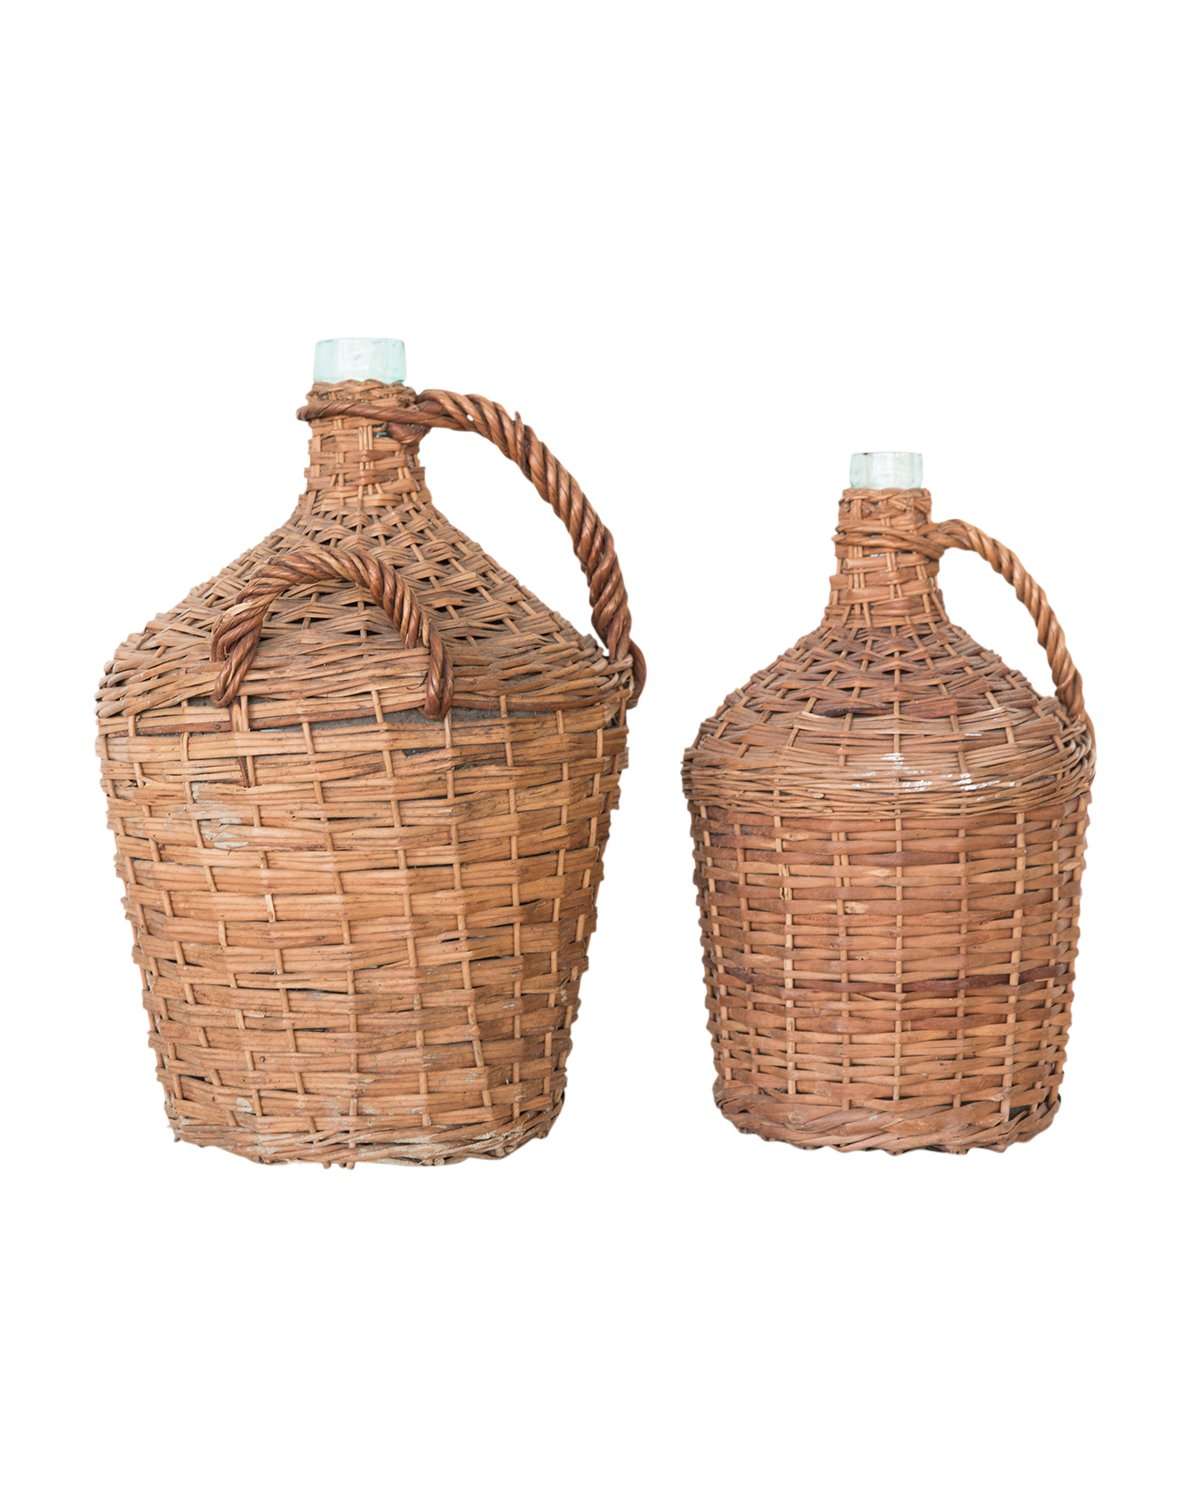 Wicker_Demijohn_Bottle_1.jpg